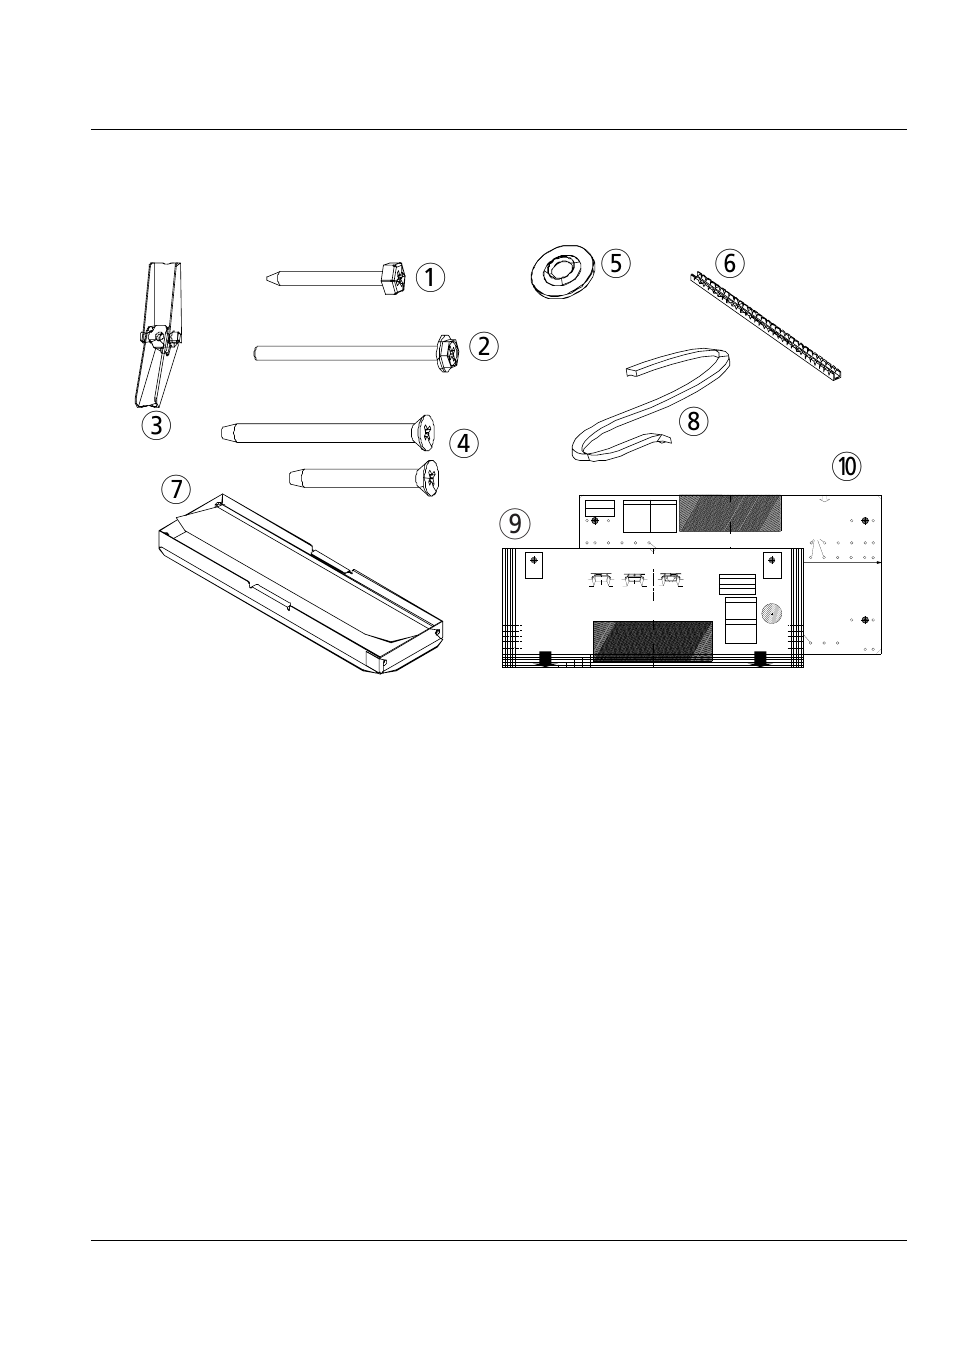 Installation Hardware Parts List Tools Maytag Mmv5000bdq 4 Wire Electric Stove Wiring Diagram Of This Product Requires Two Persons